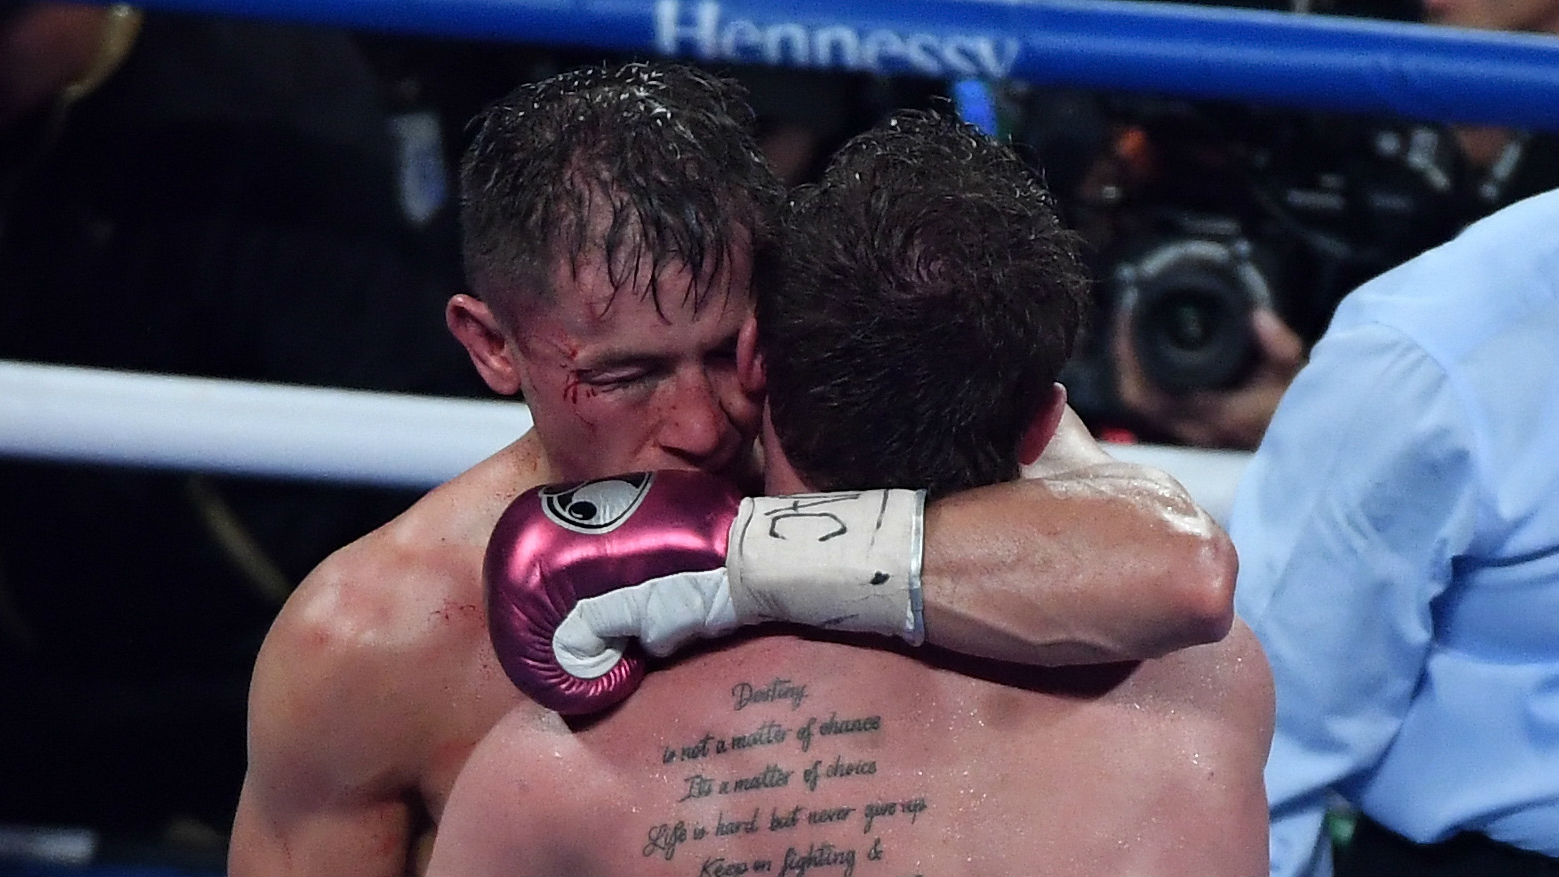 Saul Alvarez and Gennady Golovkin will be forever bound together after their latest epic. But can the rivalry have a satisfying conclusion?